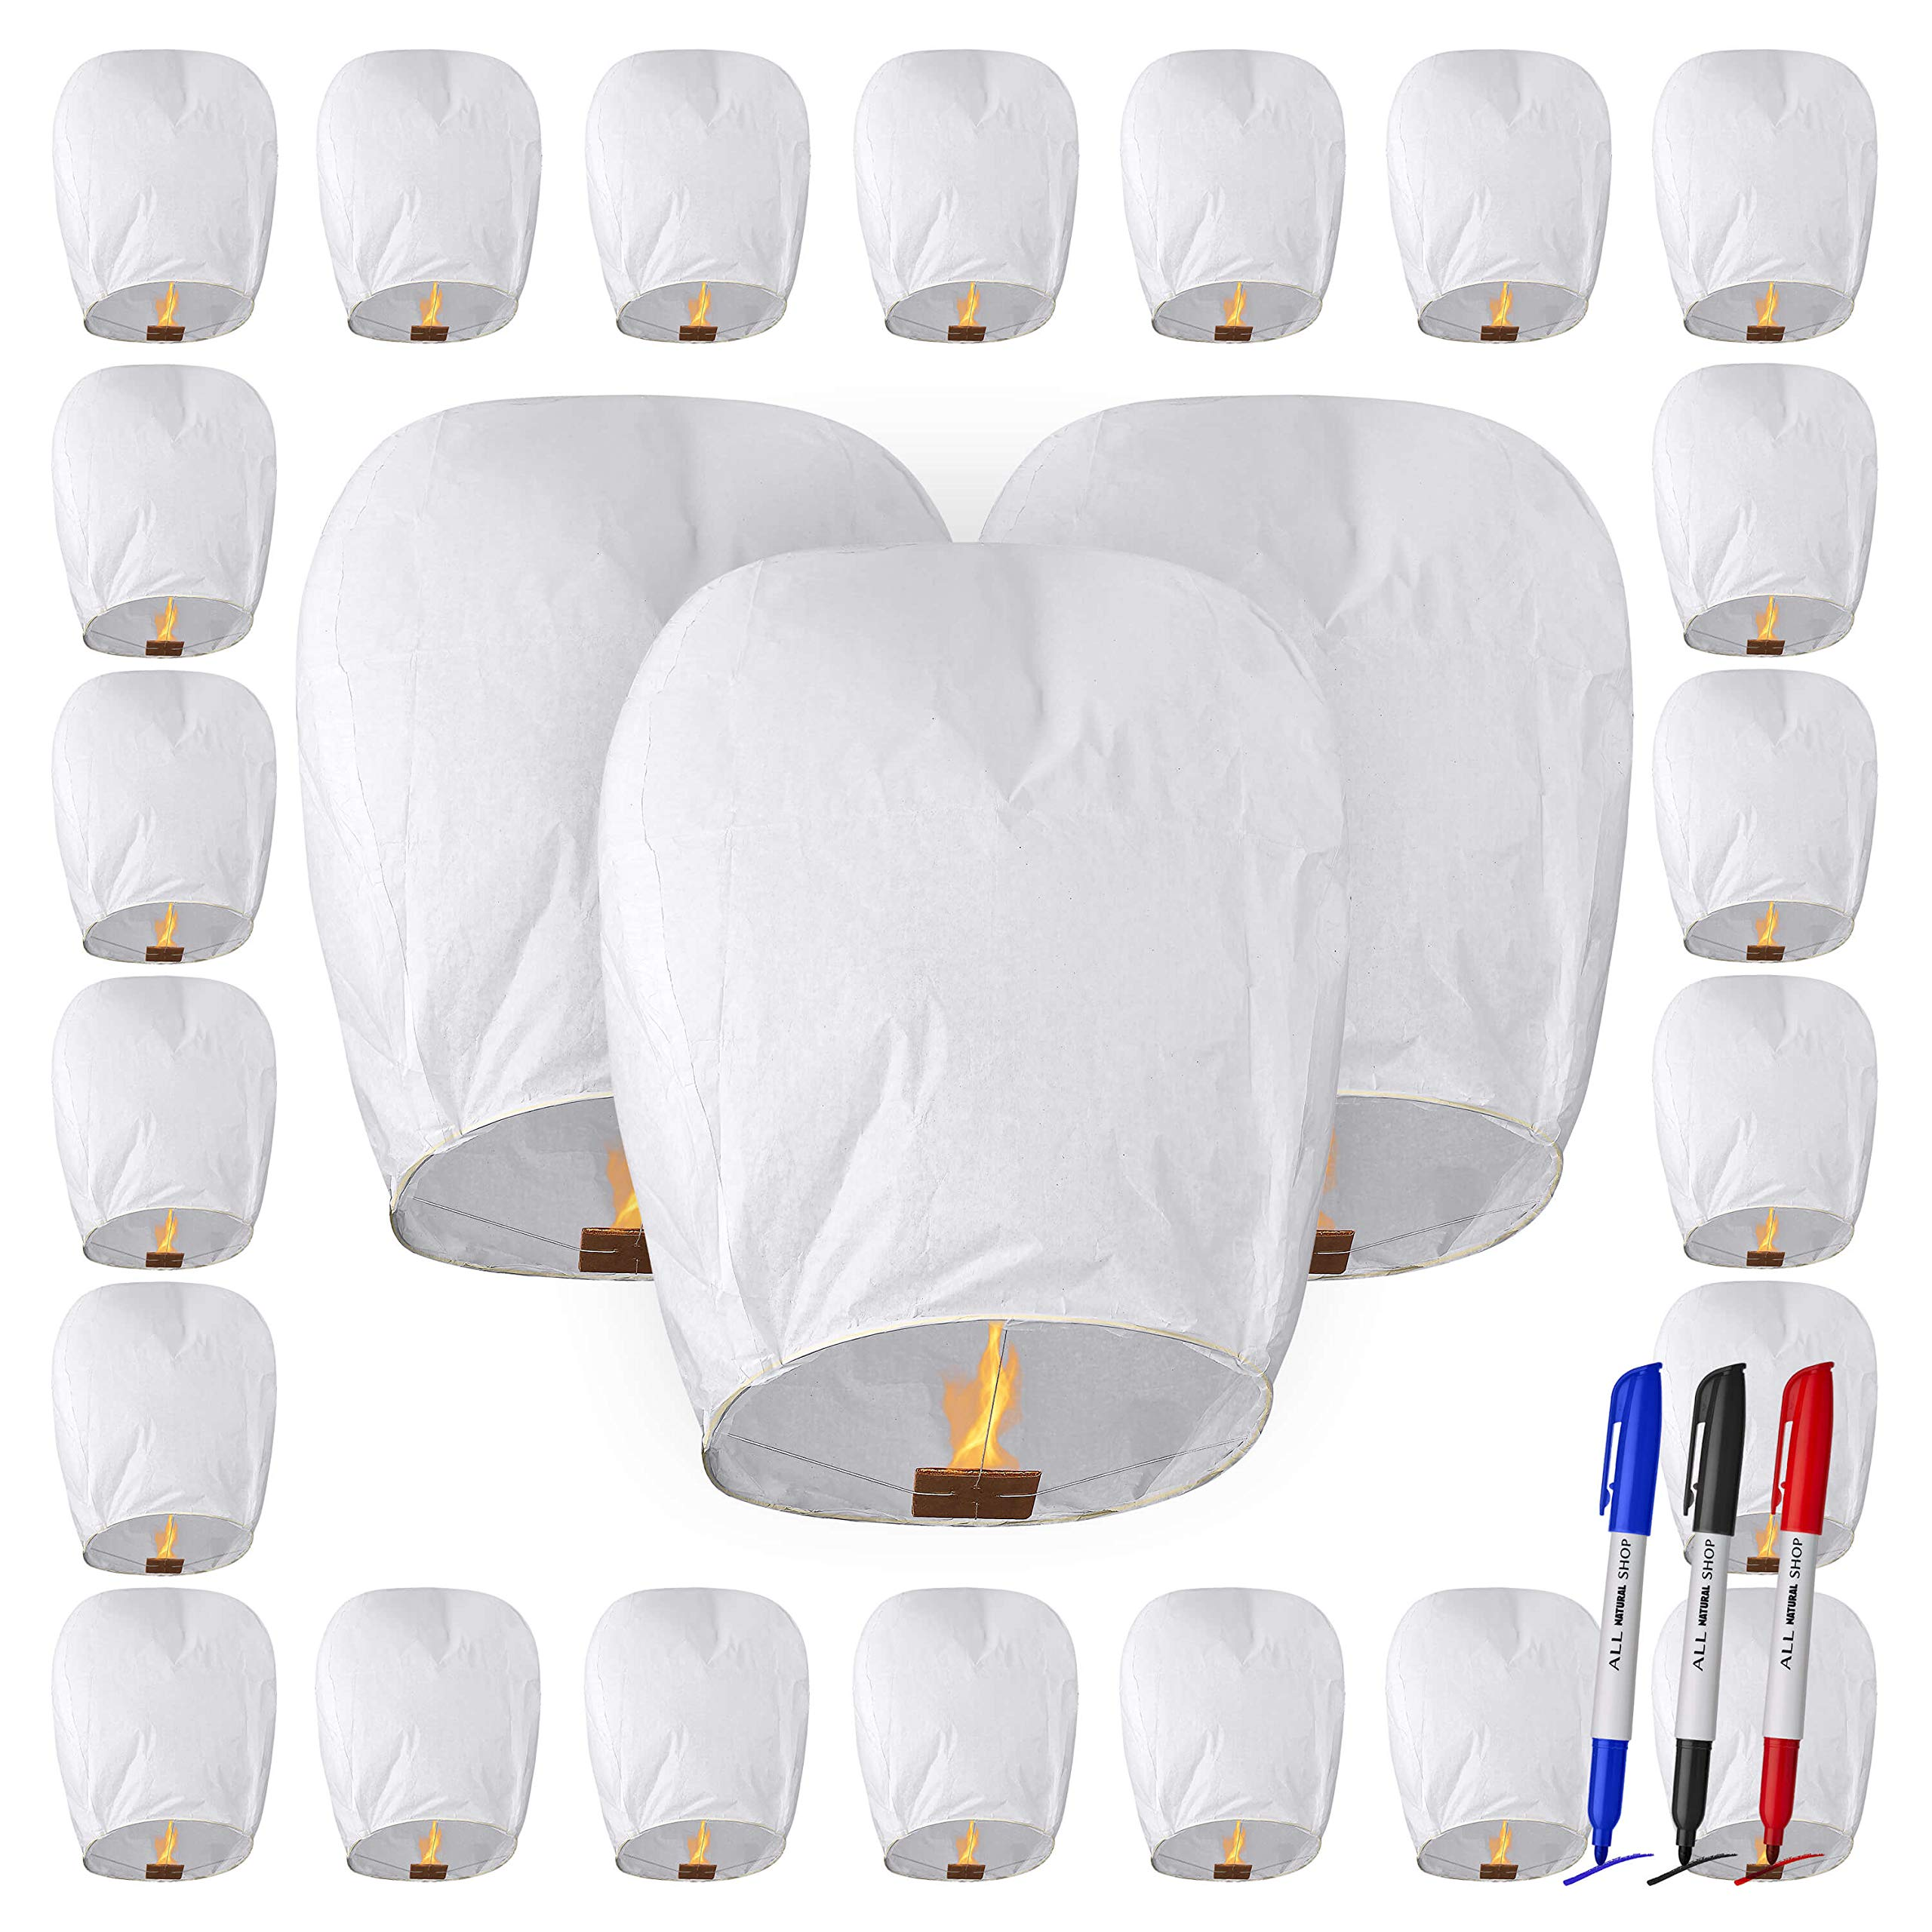 All Natural Shop 25 Pack Chinese Sky Lanterns - White, Eco Friendly, 100% Biodegradable. Wire-Free Paper Japanese Prime Paper Sky Lantern to Release in Sky. by All Natural Shop